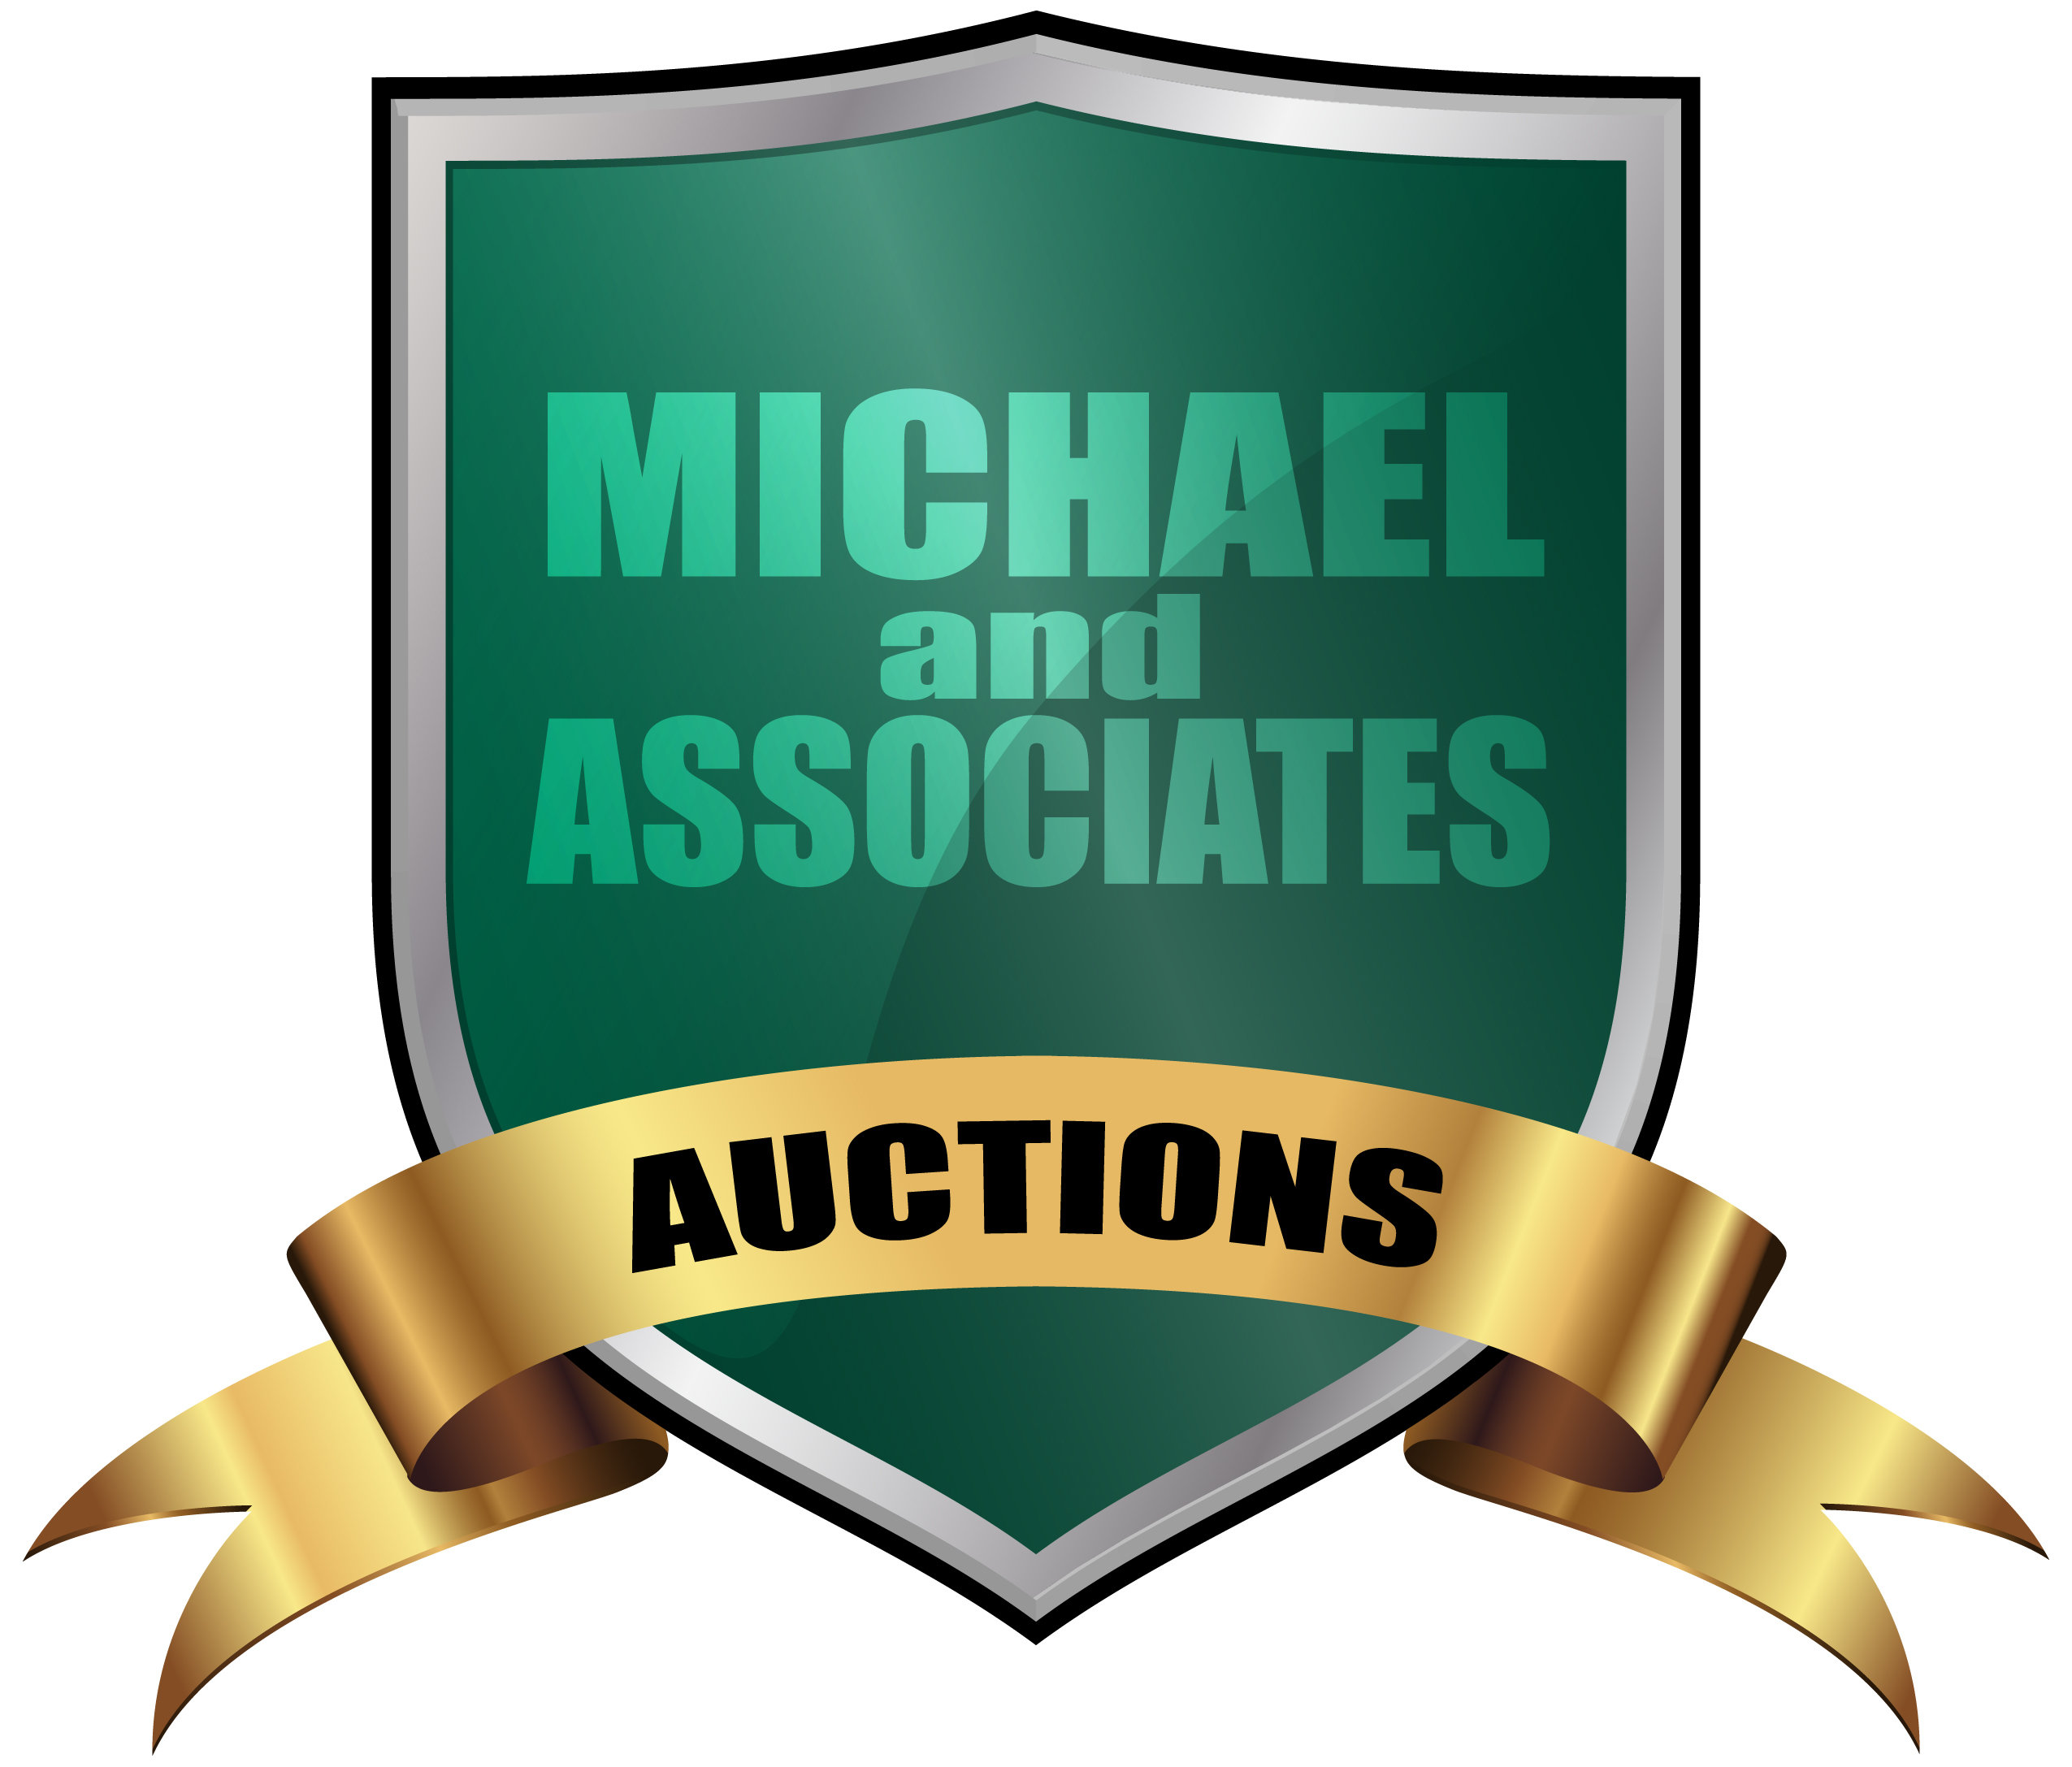 Michael & Associates Auctions & Appraisals (MAAA)